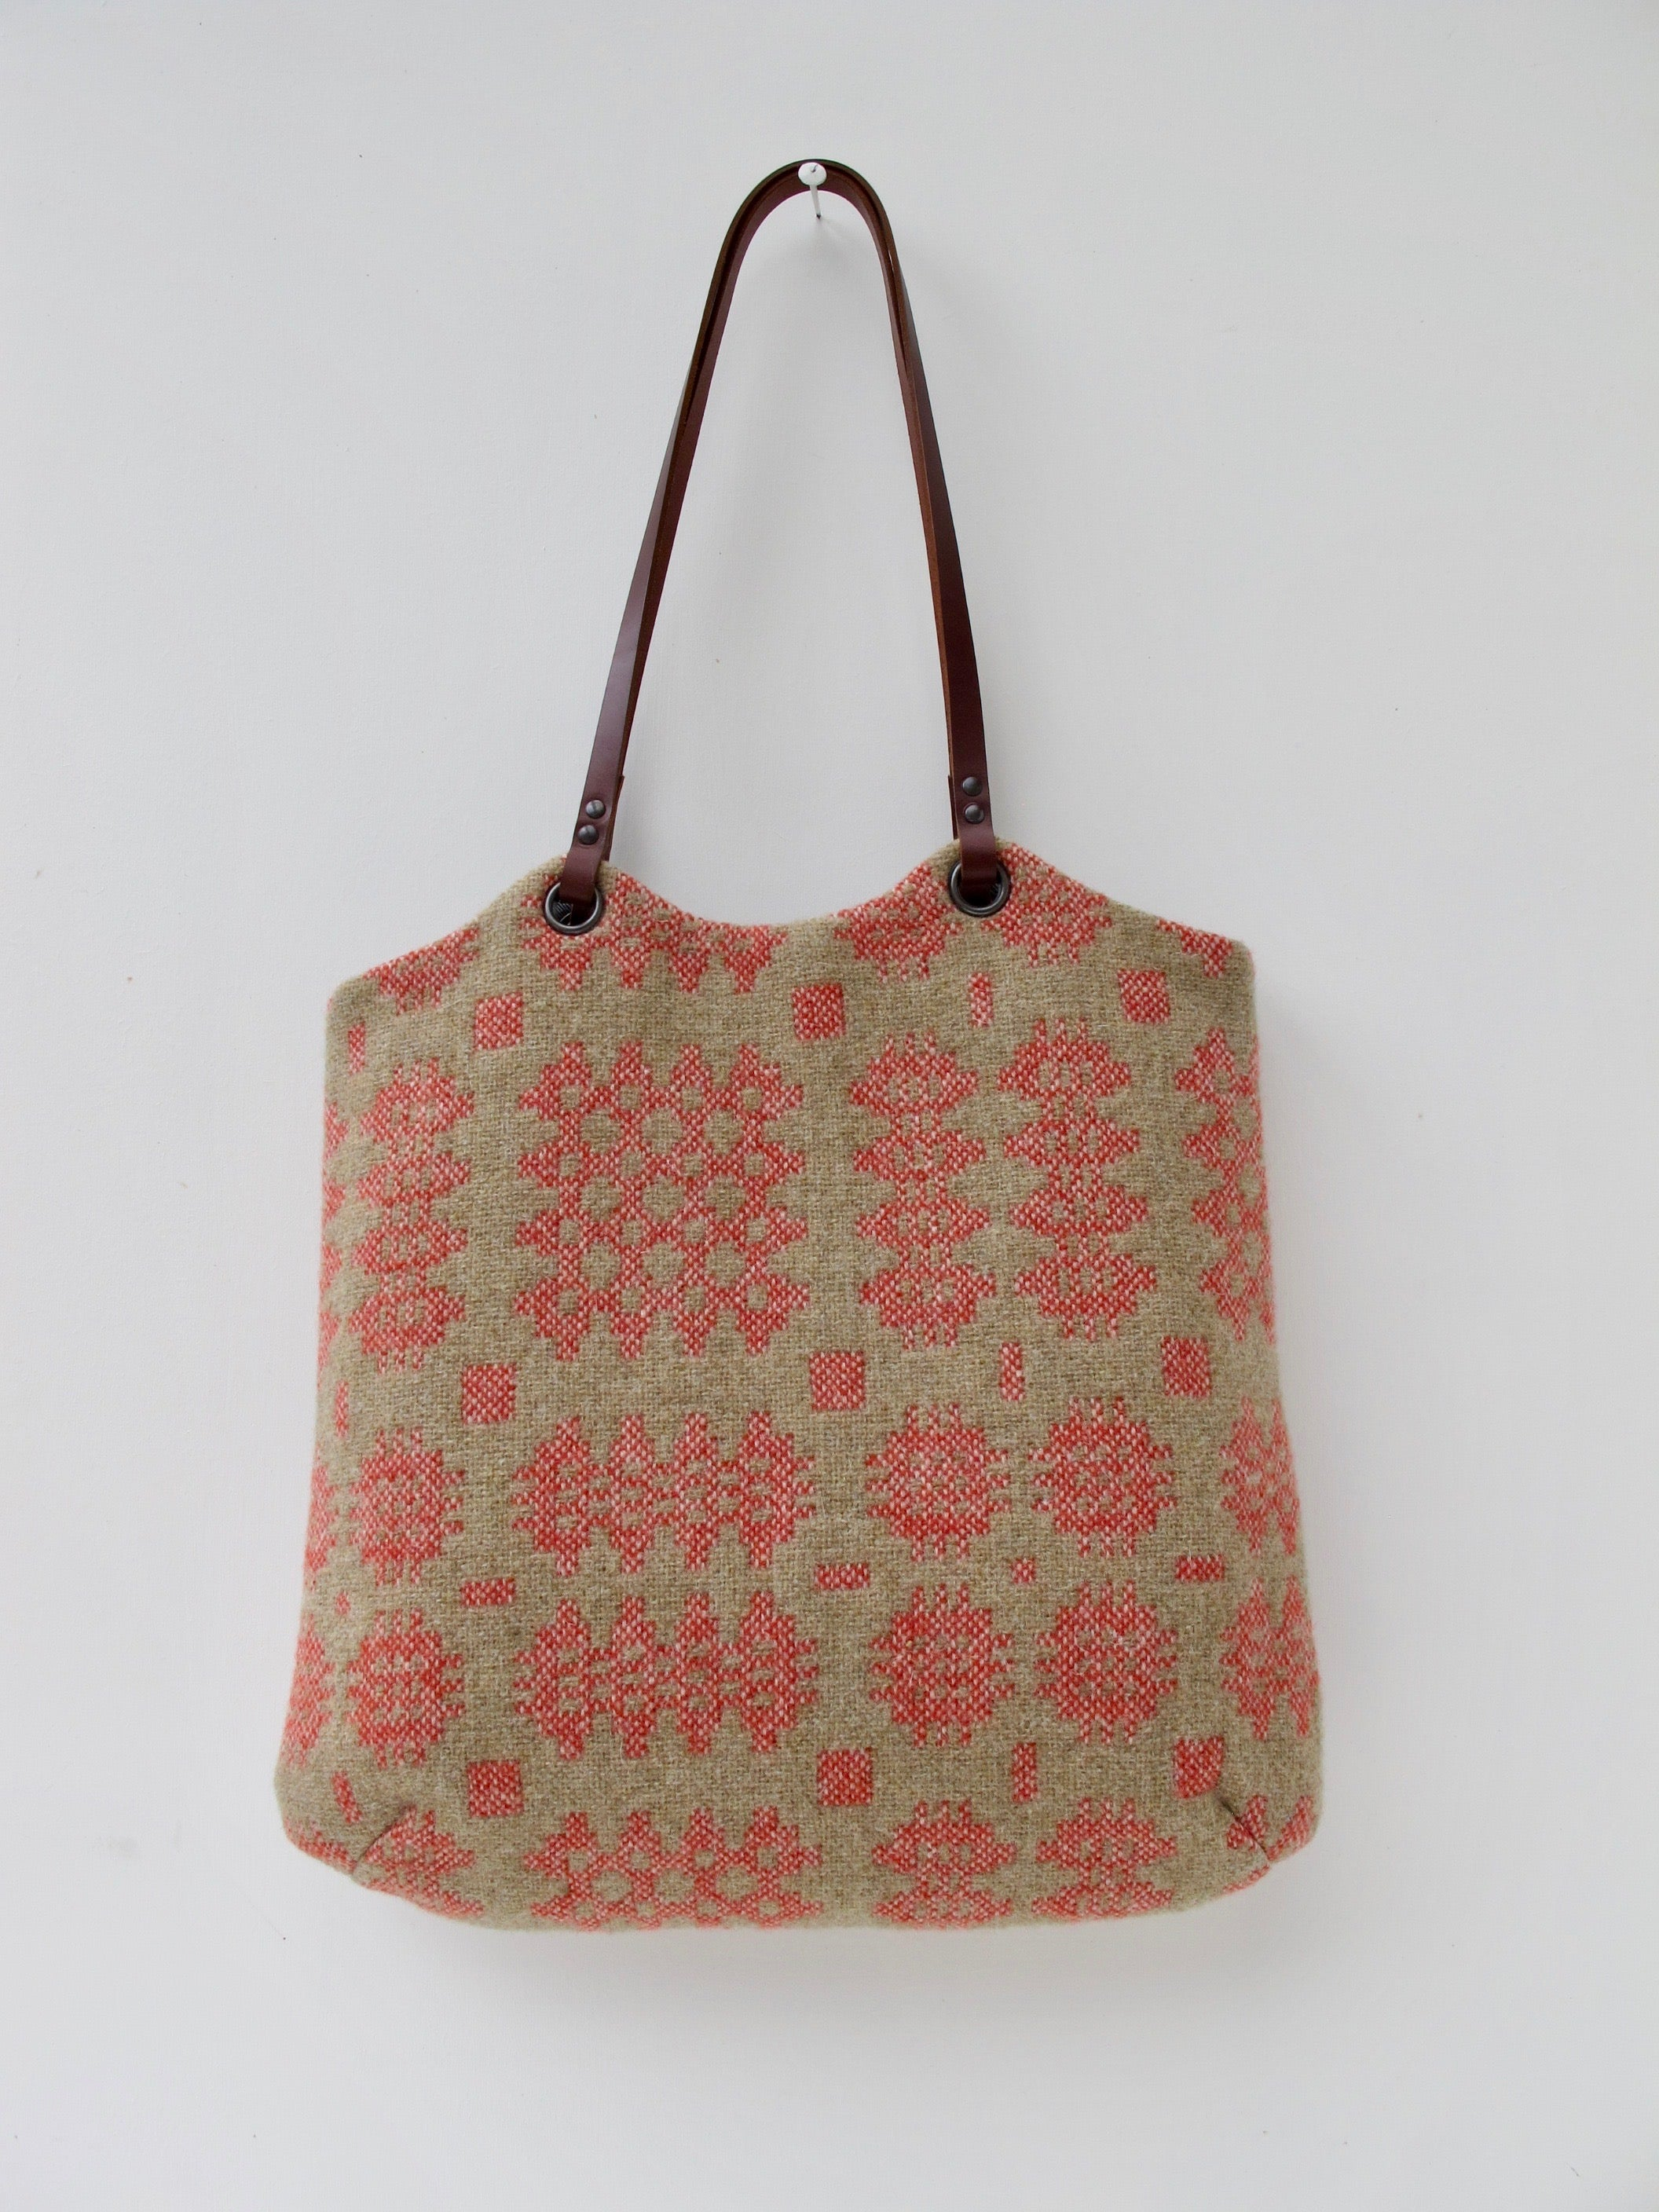 Tapestry Tote - Sand & Coral I